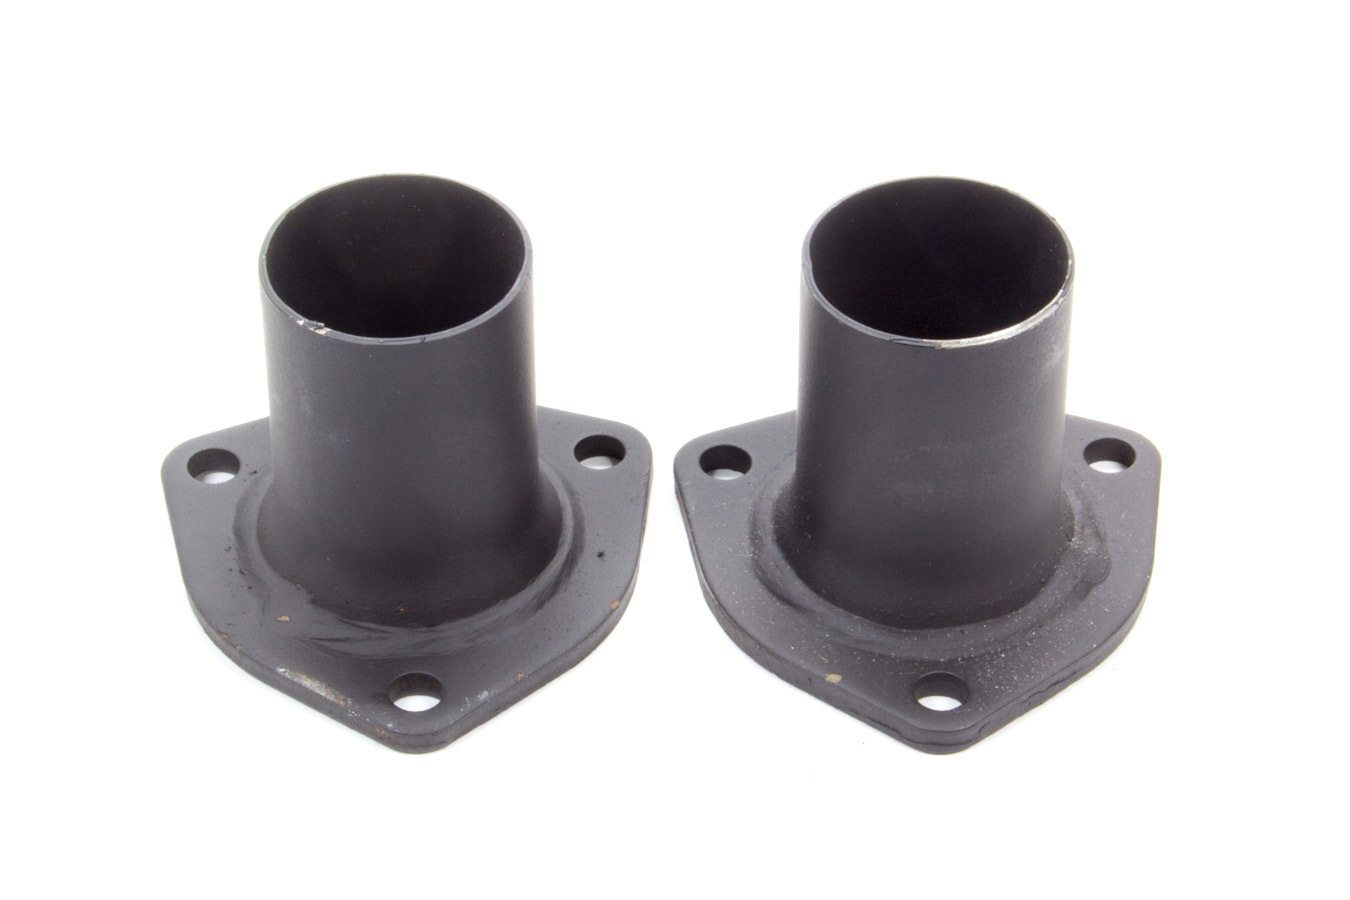 Hooker 11025 Collector Reducer, 2-1/2 in Inlet to 2 in Outlet, 3-Bolt Flange, Steel, Black Paint, Pair